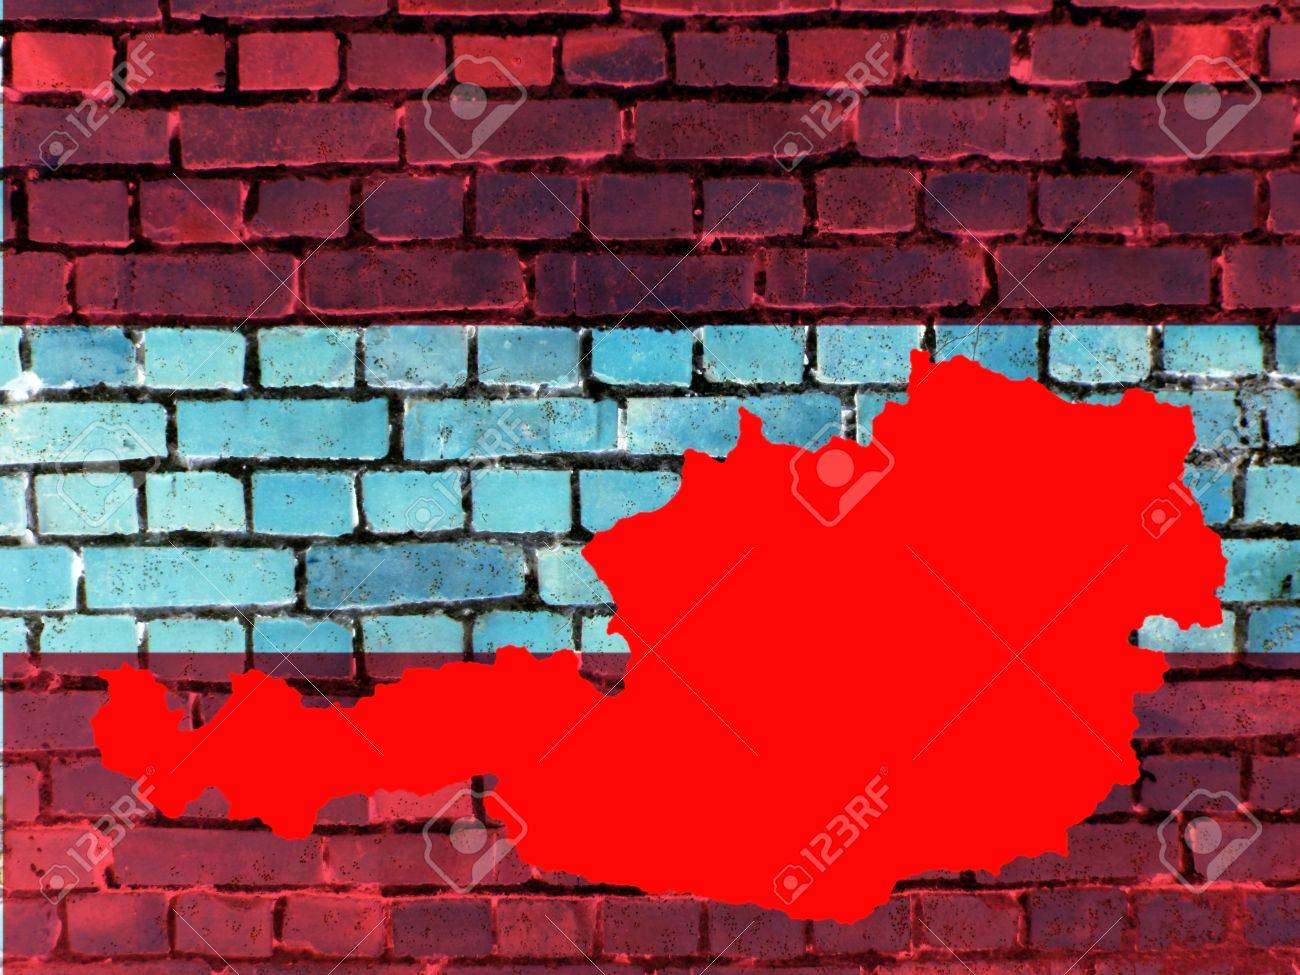 Topics to Austria (background) - The red map of Austria against a brick wall in the national colors. - 60581385